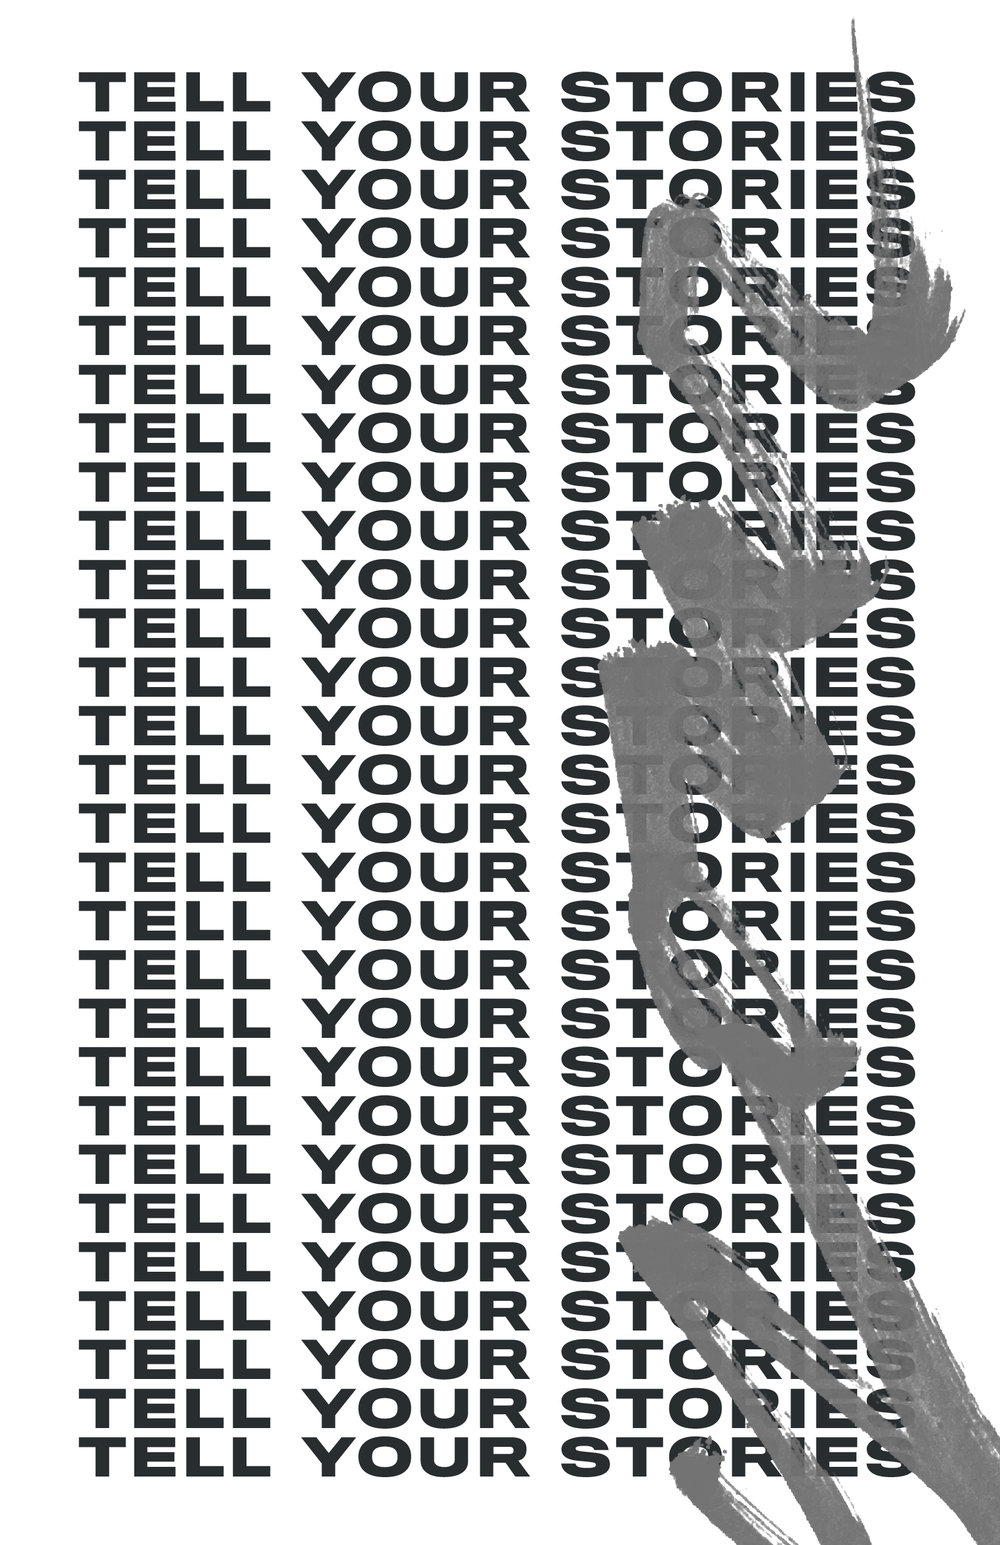 TellYourStories_Sketch-03.jpg